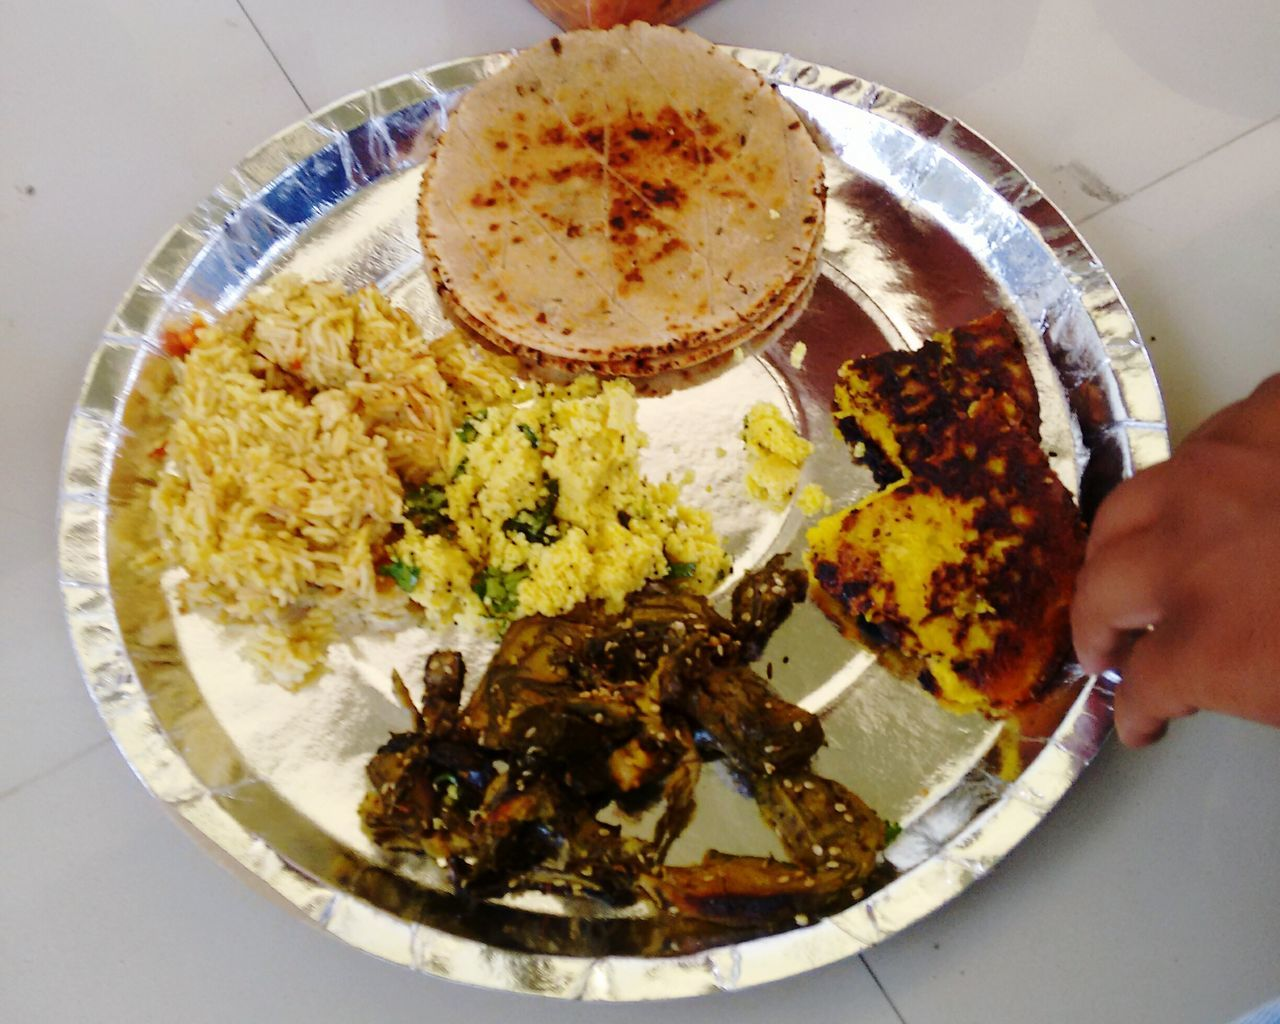 Indian Food Gujarati Food Patra Handvo Bhakhari Khichadi Khaman